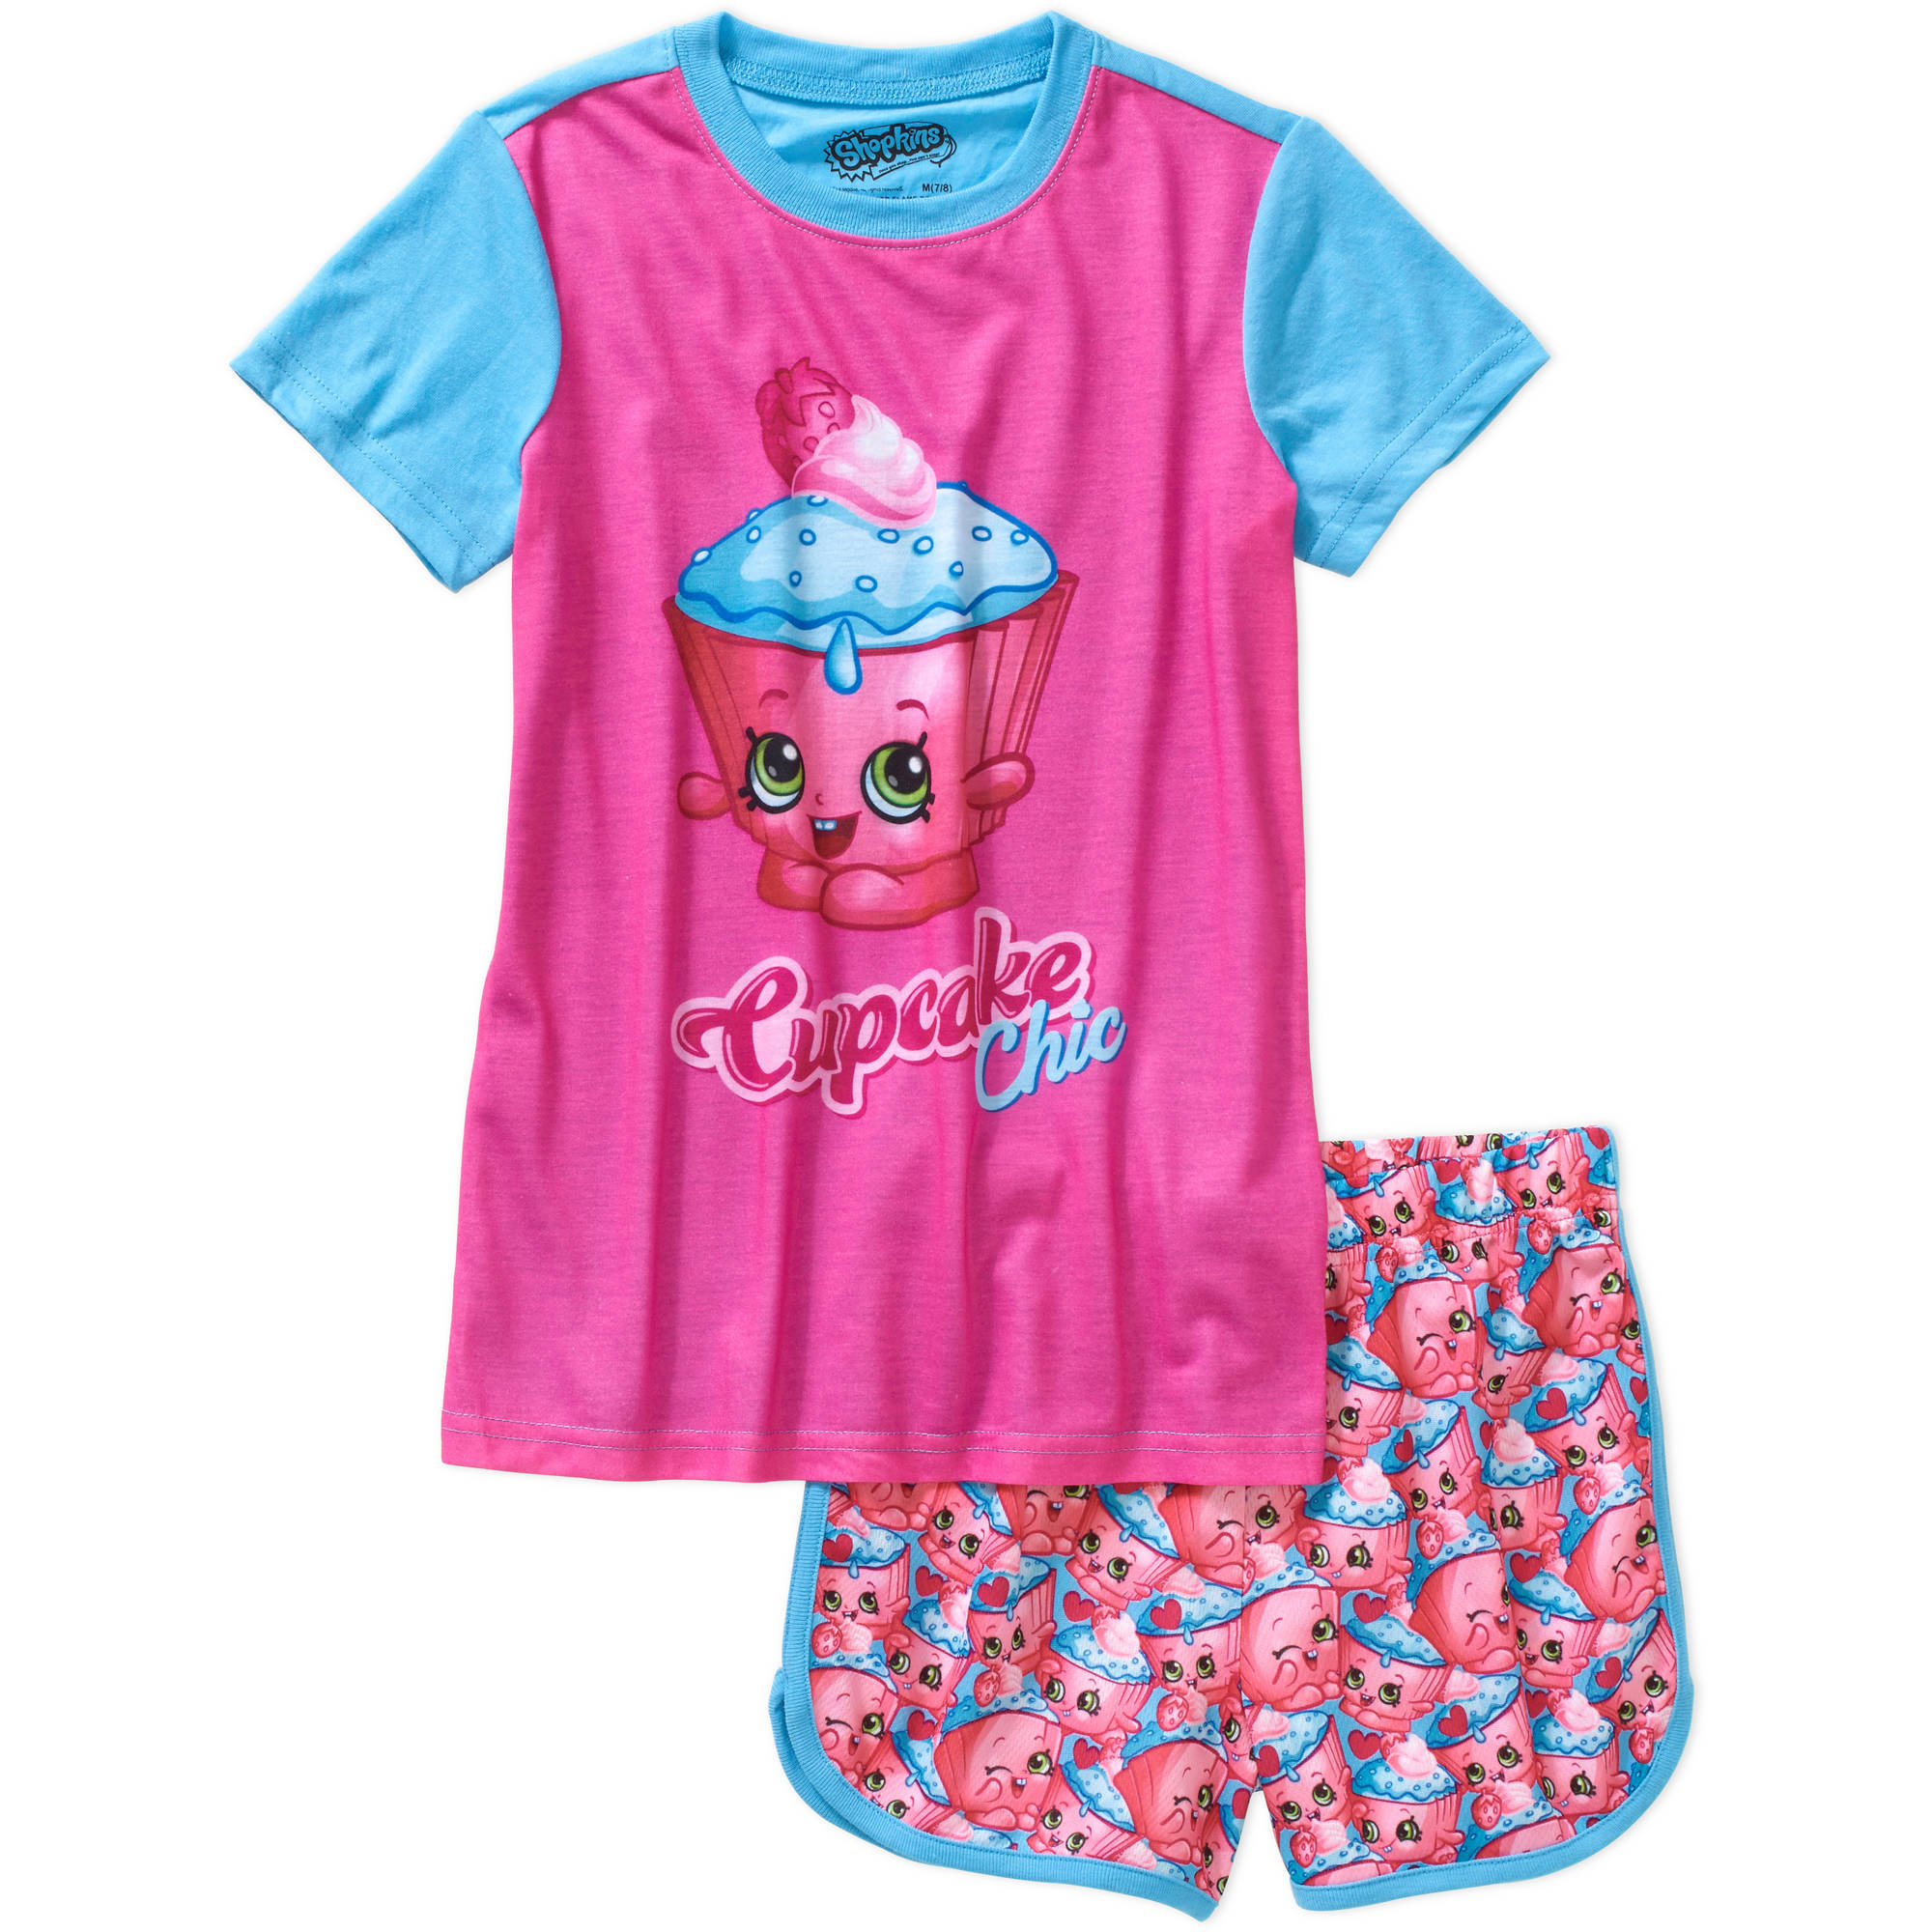 Shopkins Girls' Cupcake Chic Short Sleeve Top and Shorts Sleepwear Set